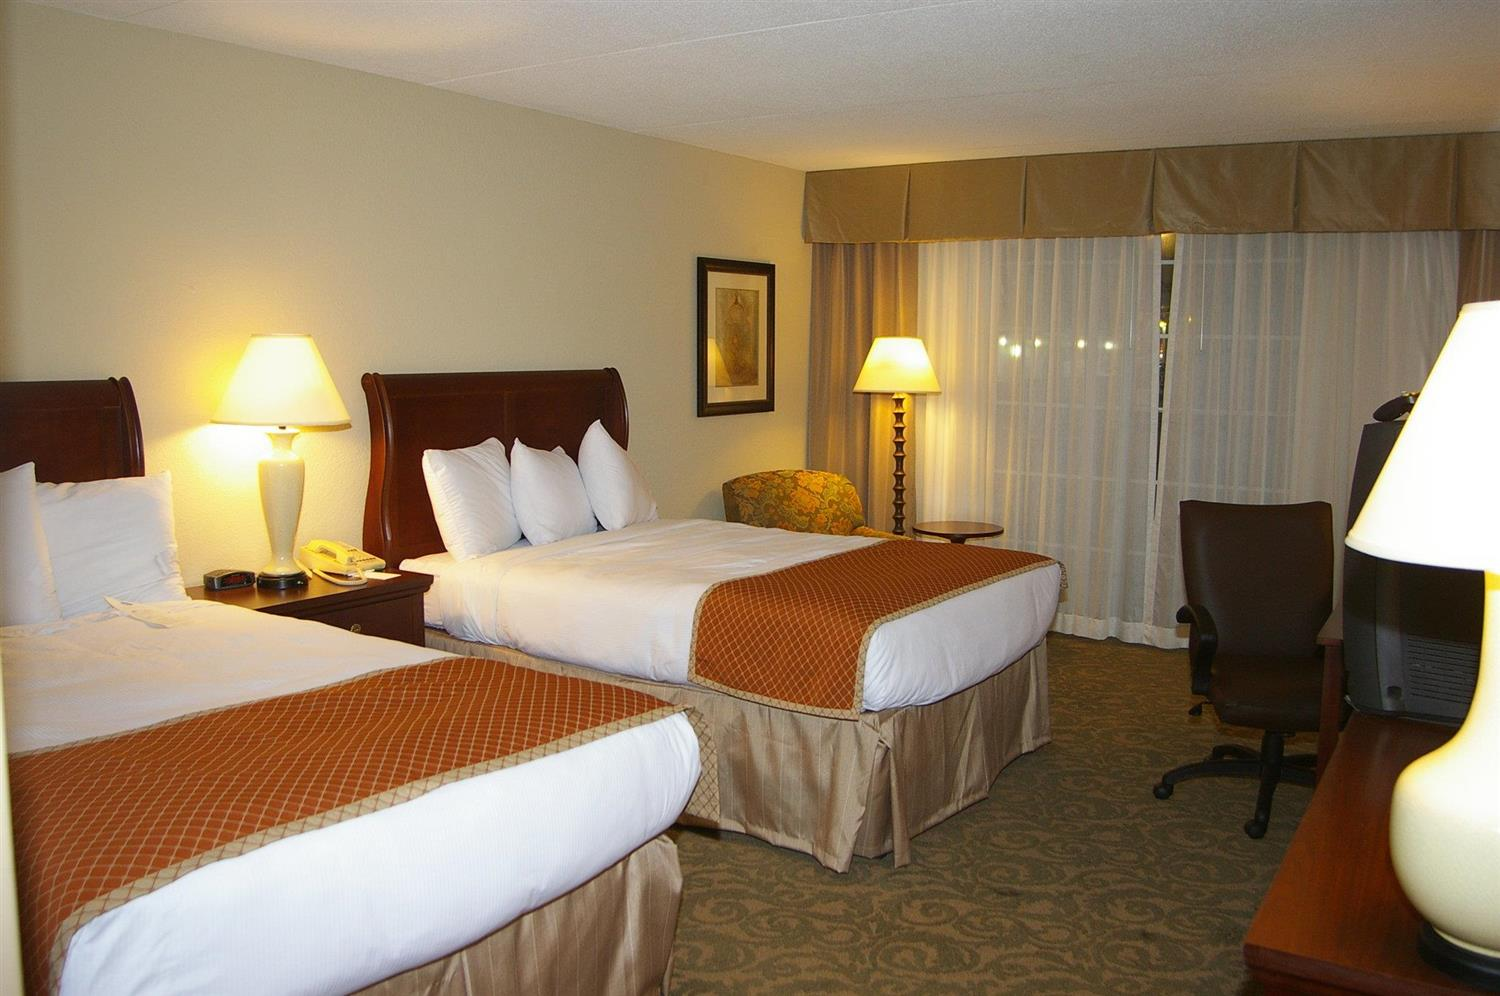 Room - Sturbridge Host Hotel & Conference Center